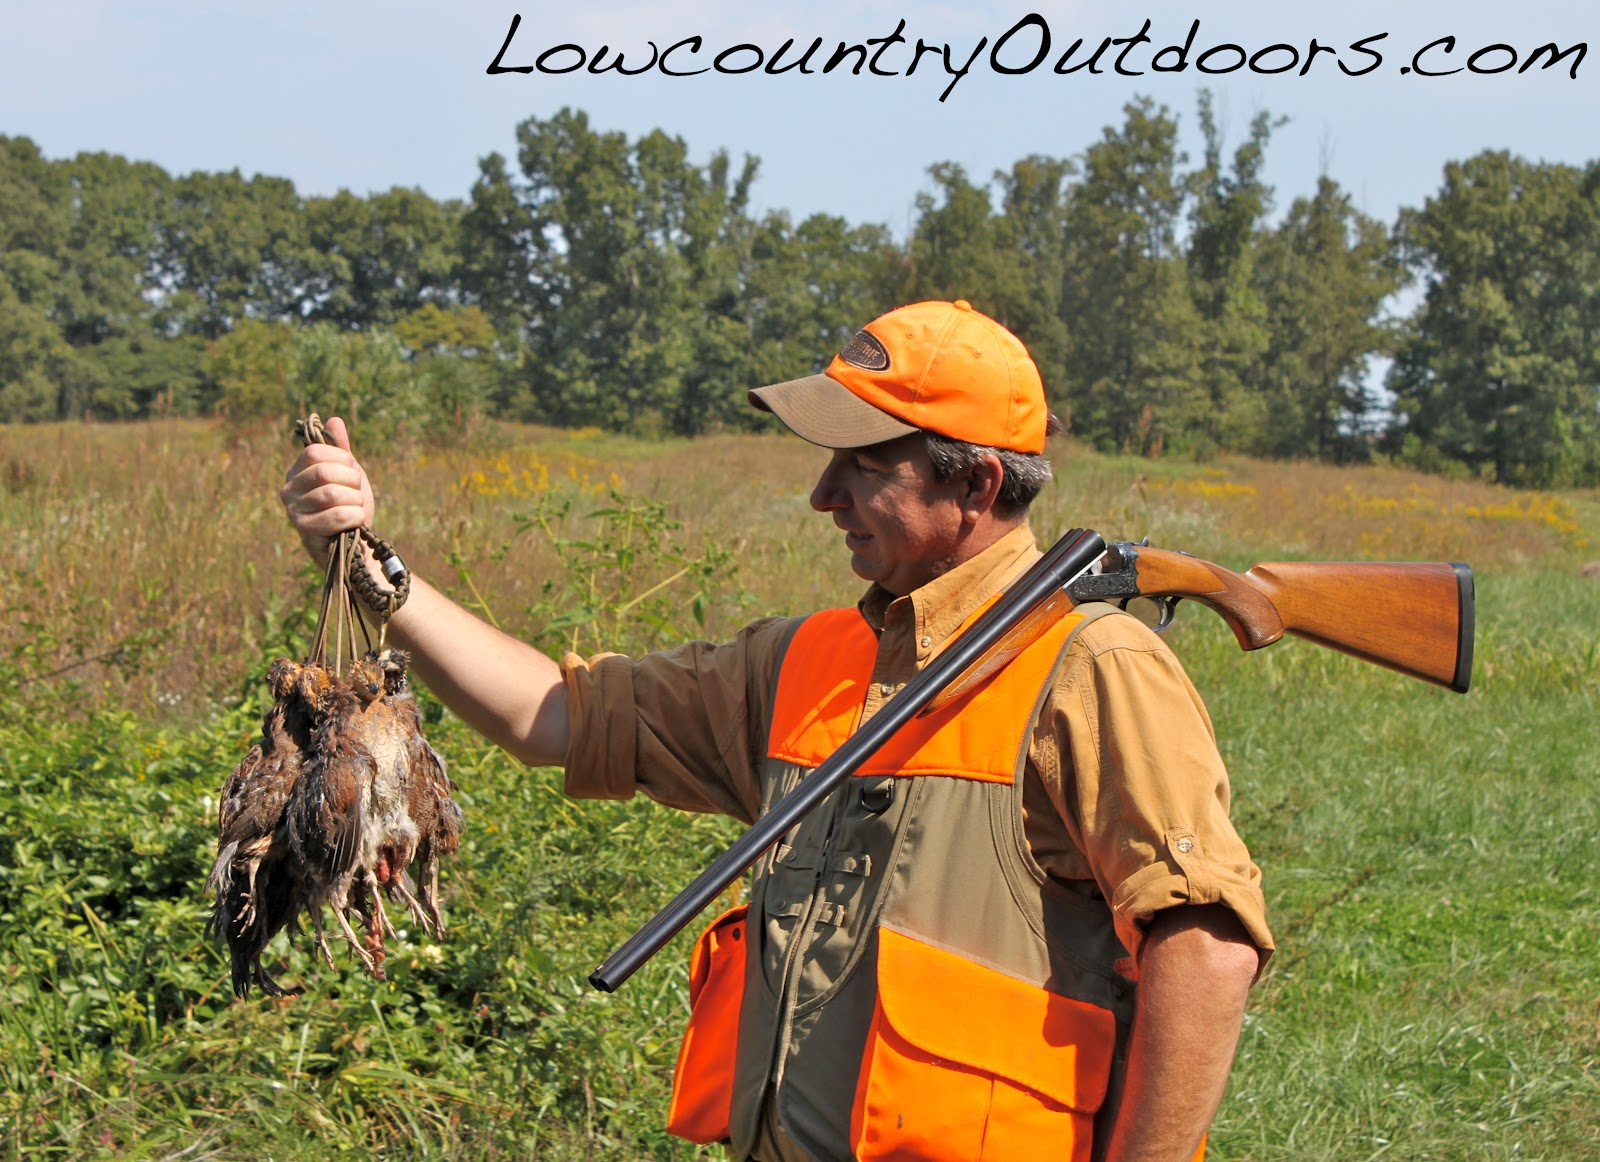 Lowcountry outdoors: Quail Preserve season opens - NBCI update